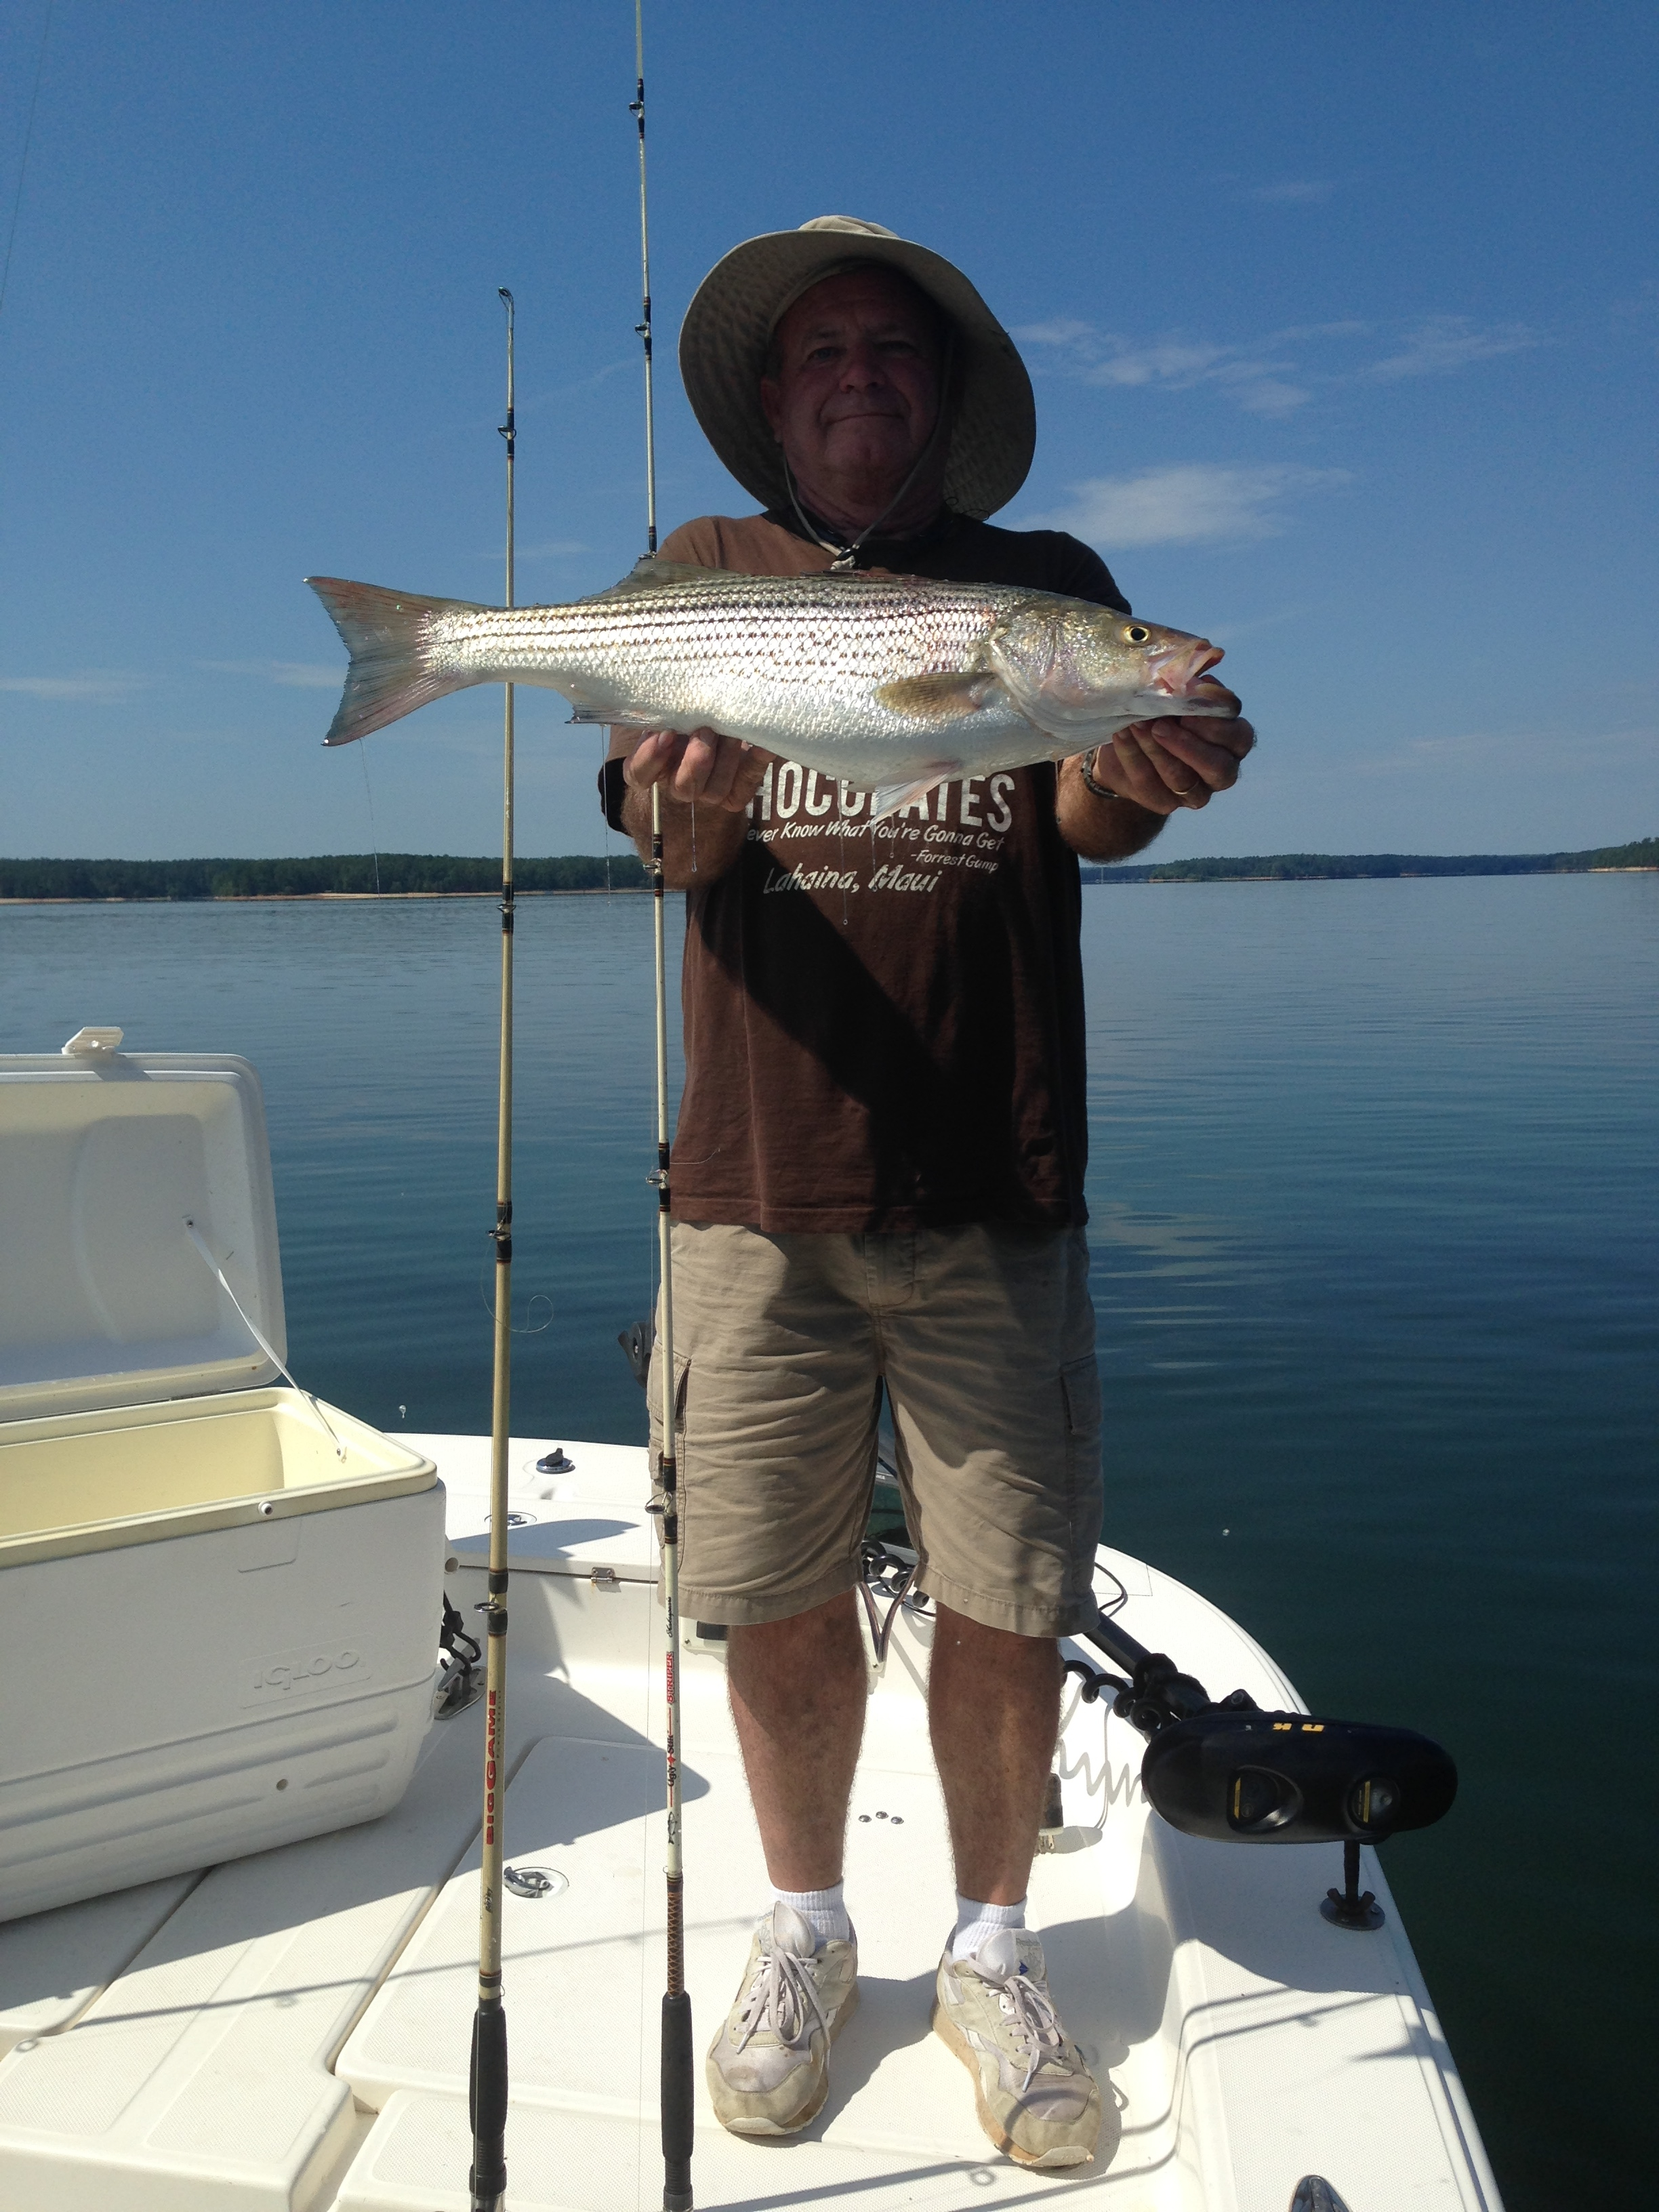 Captain Billy with his 8 lbs striper